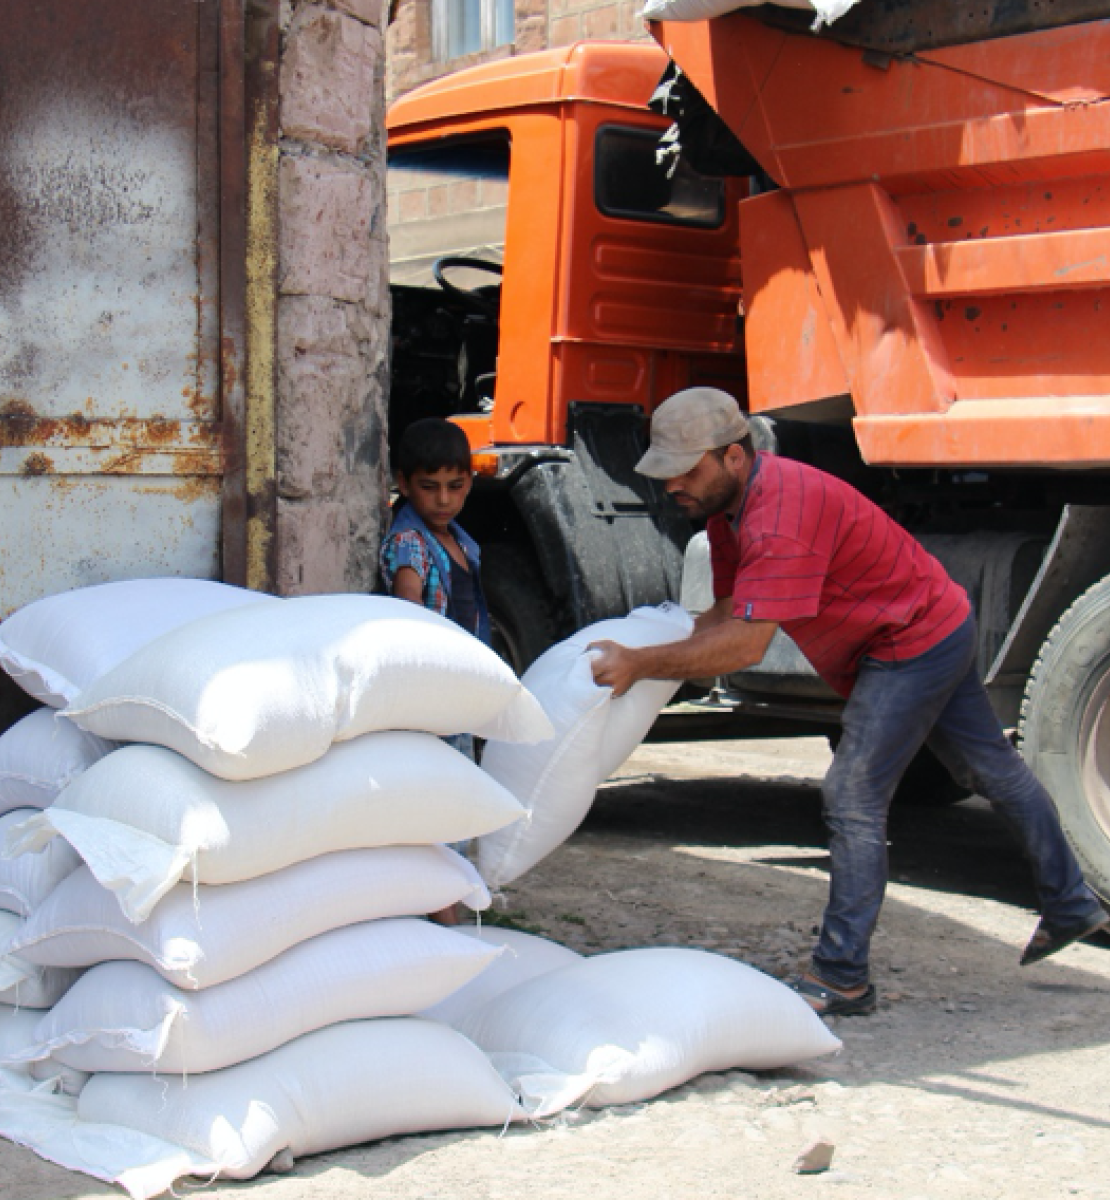 A man in a red shirt unloads white bags from a large orange truck while a small child looks on.